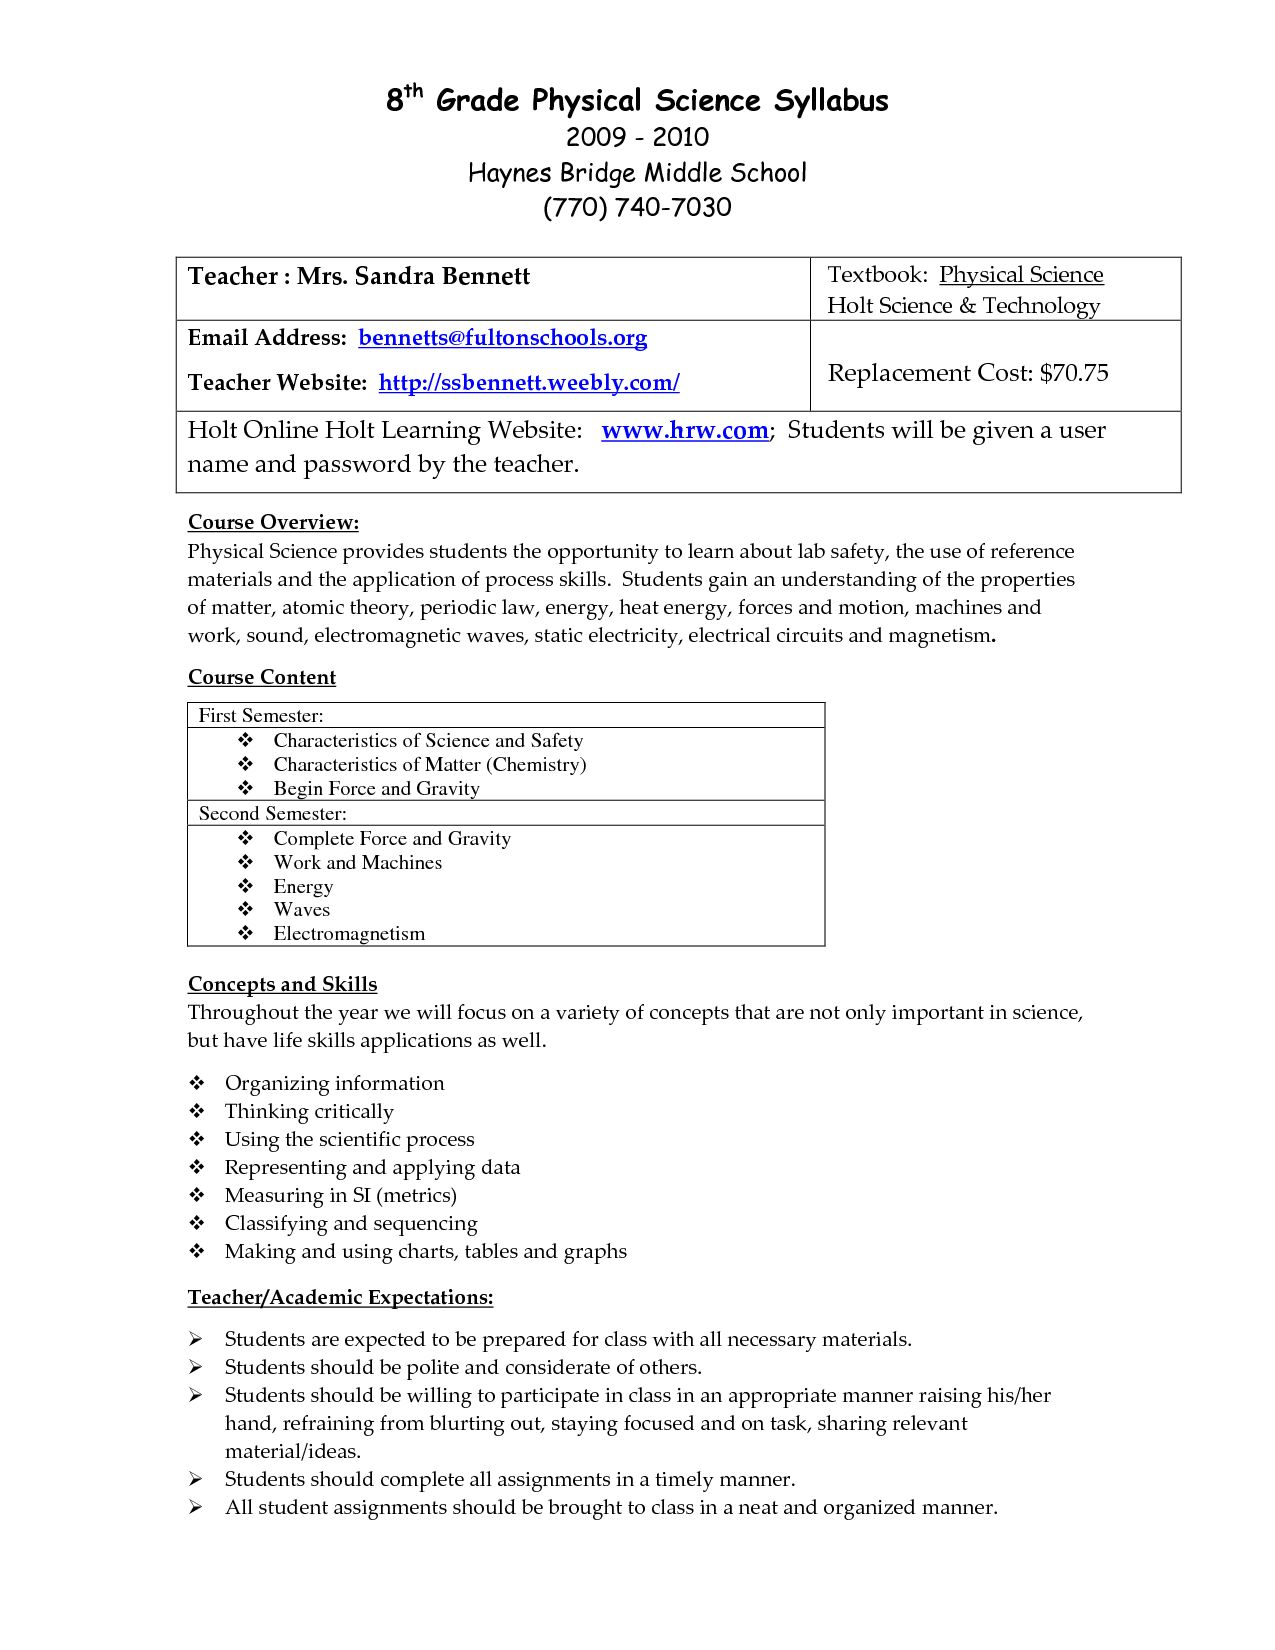 hight resolution of States Of Matter Worksheets 9th Grade   Printable Worksheets and Activities  for Teachers